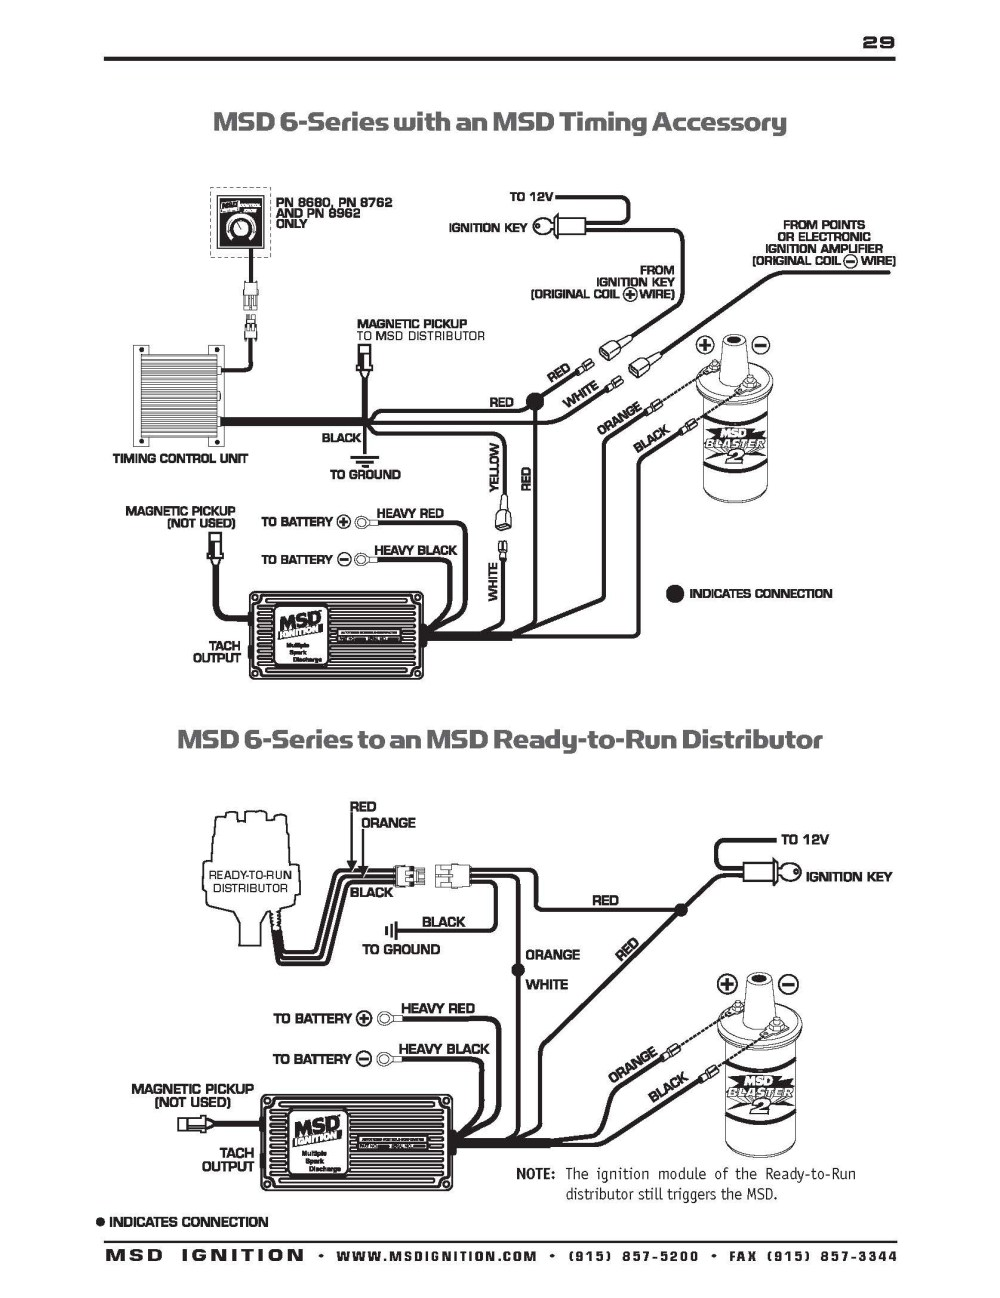 medium resolution of msd wiring diagram 280zx wiring diagram article reviewmsd wiring diagram 280zx wiring diagram megamsd wiring diagram